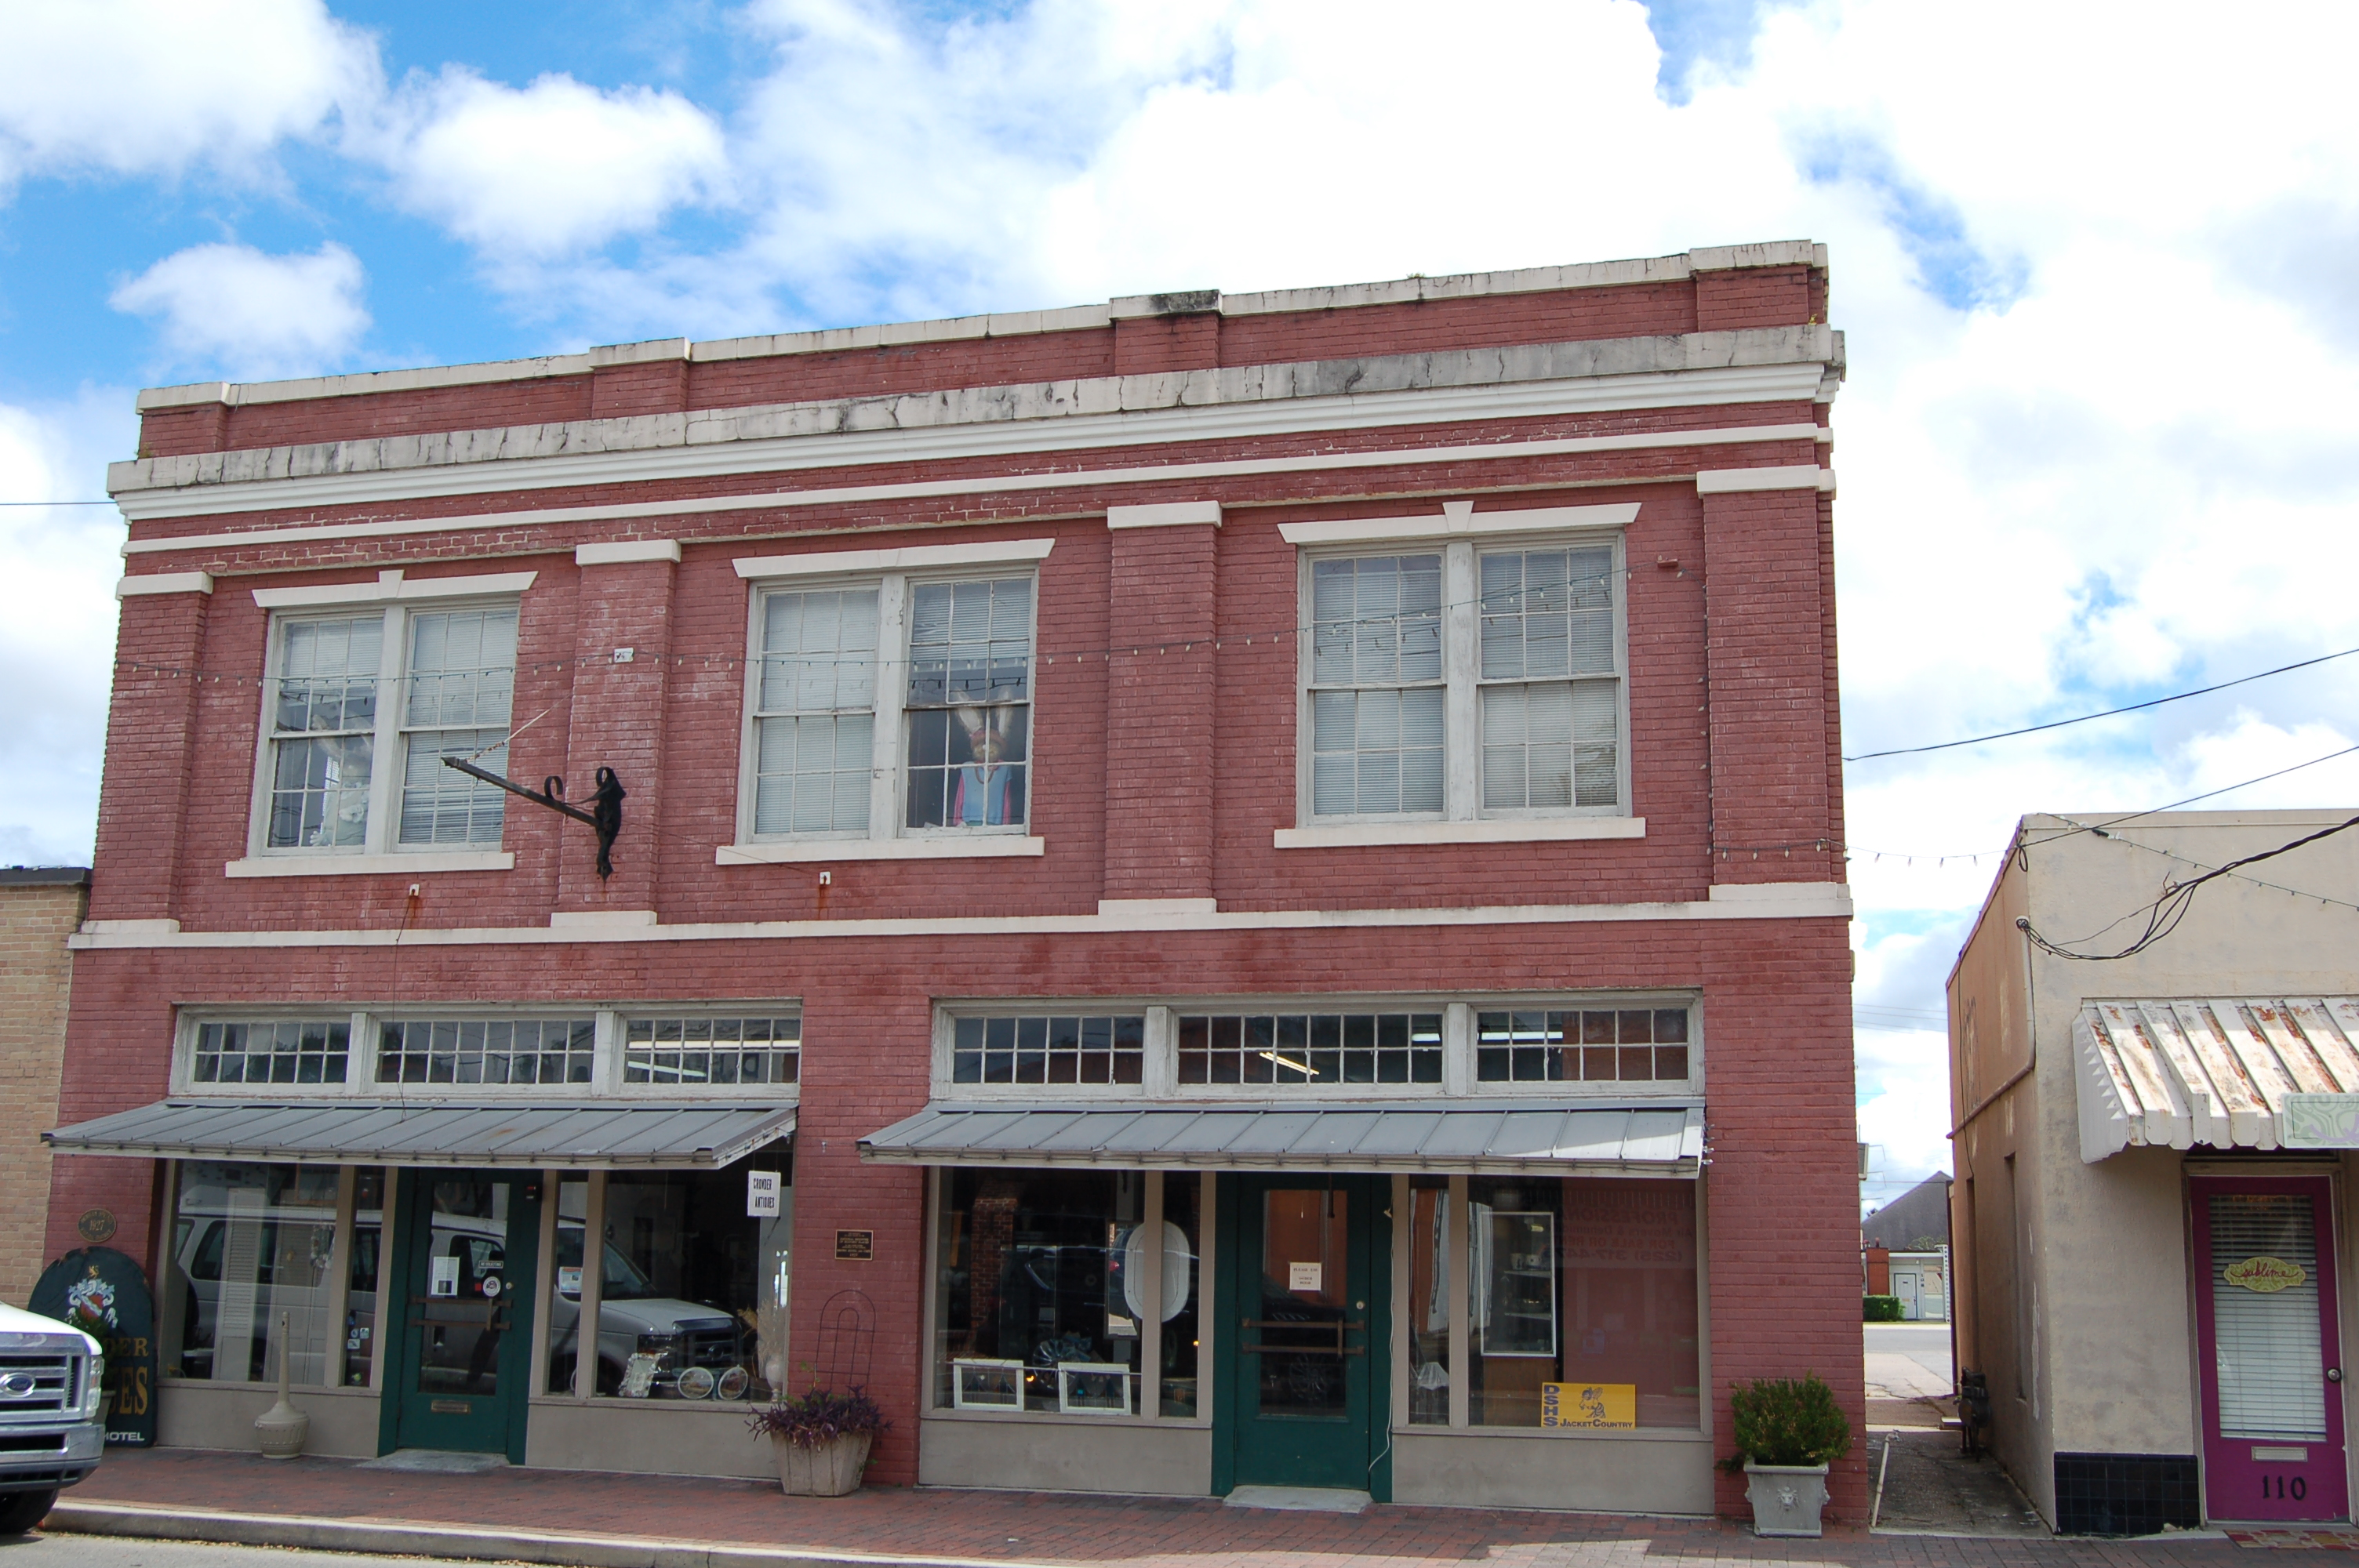 file:brown hotel denham springs - wikimedia commons